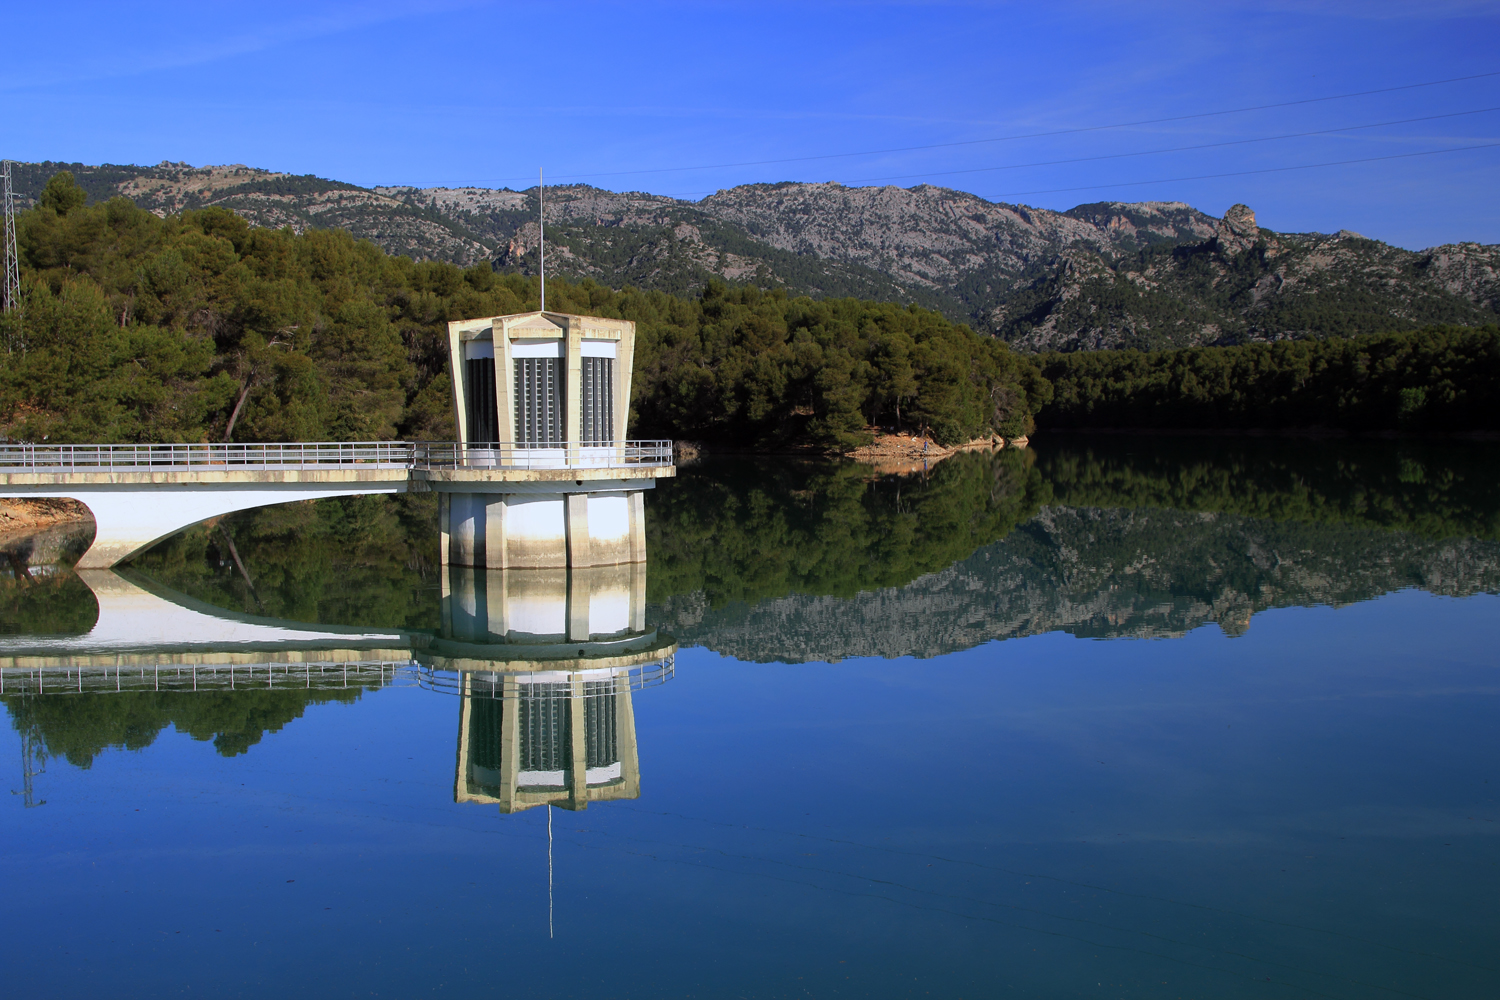 """The Pesa"" - Embalse de Bolera, Jaen - L08876"